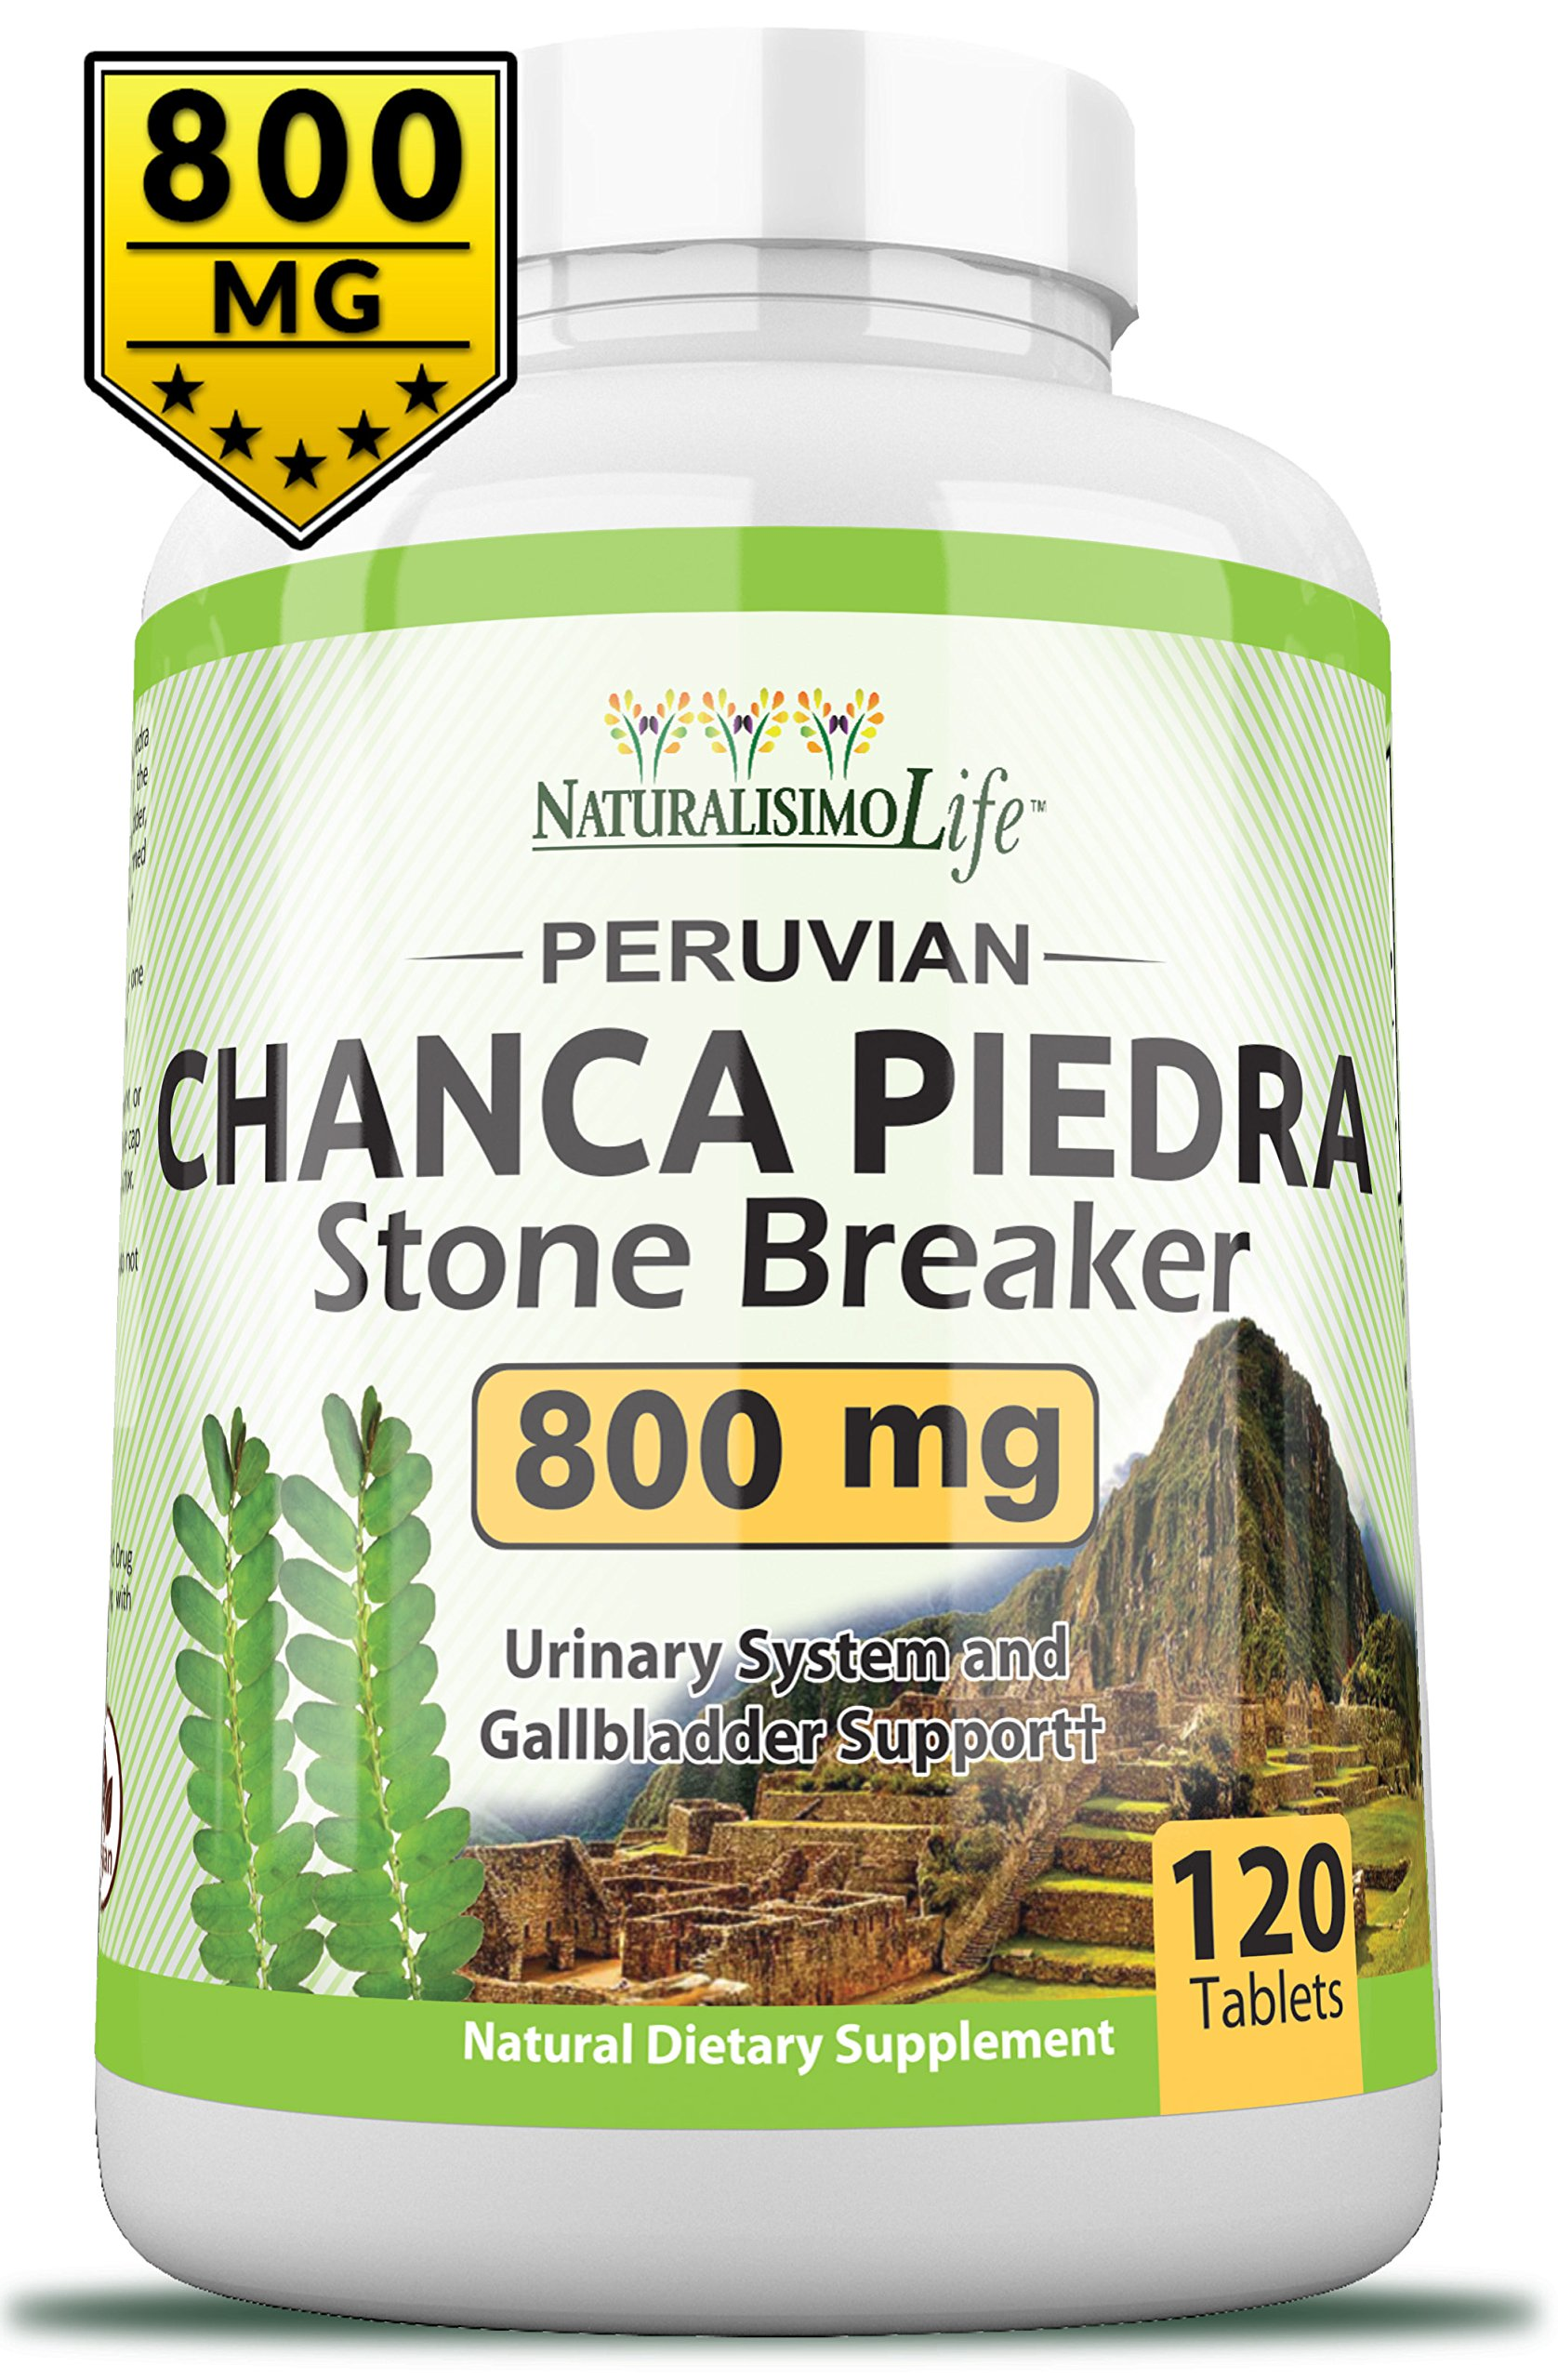 Chanca Piedra 800MG per Tablet - 120 Tablets Kidney Stone Crusher Gallbladder Support Peruvian Chanca Piedra Made in The USA by NaturalisimoLife